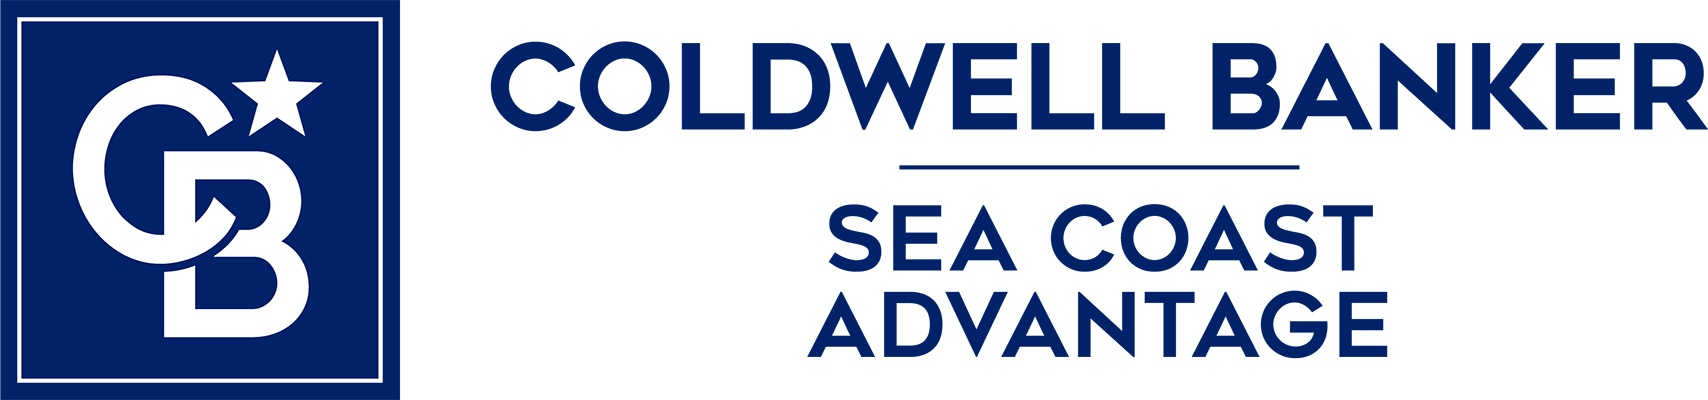 Kathryn Ruth - Coldwell Banker Sea Coast Advantage Realty